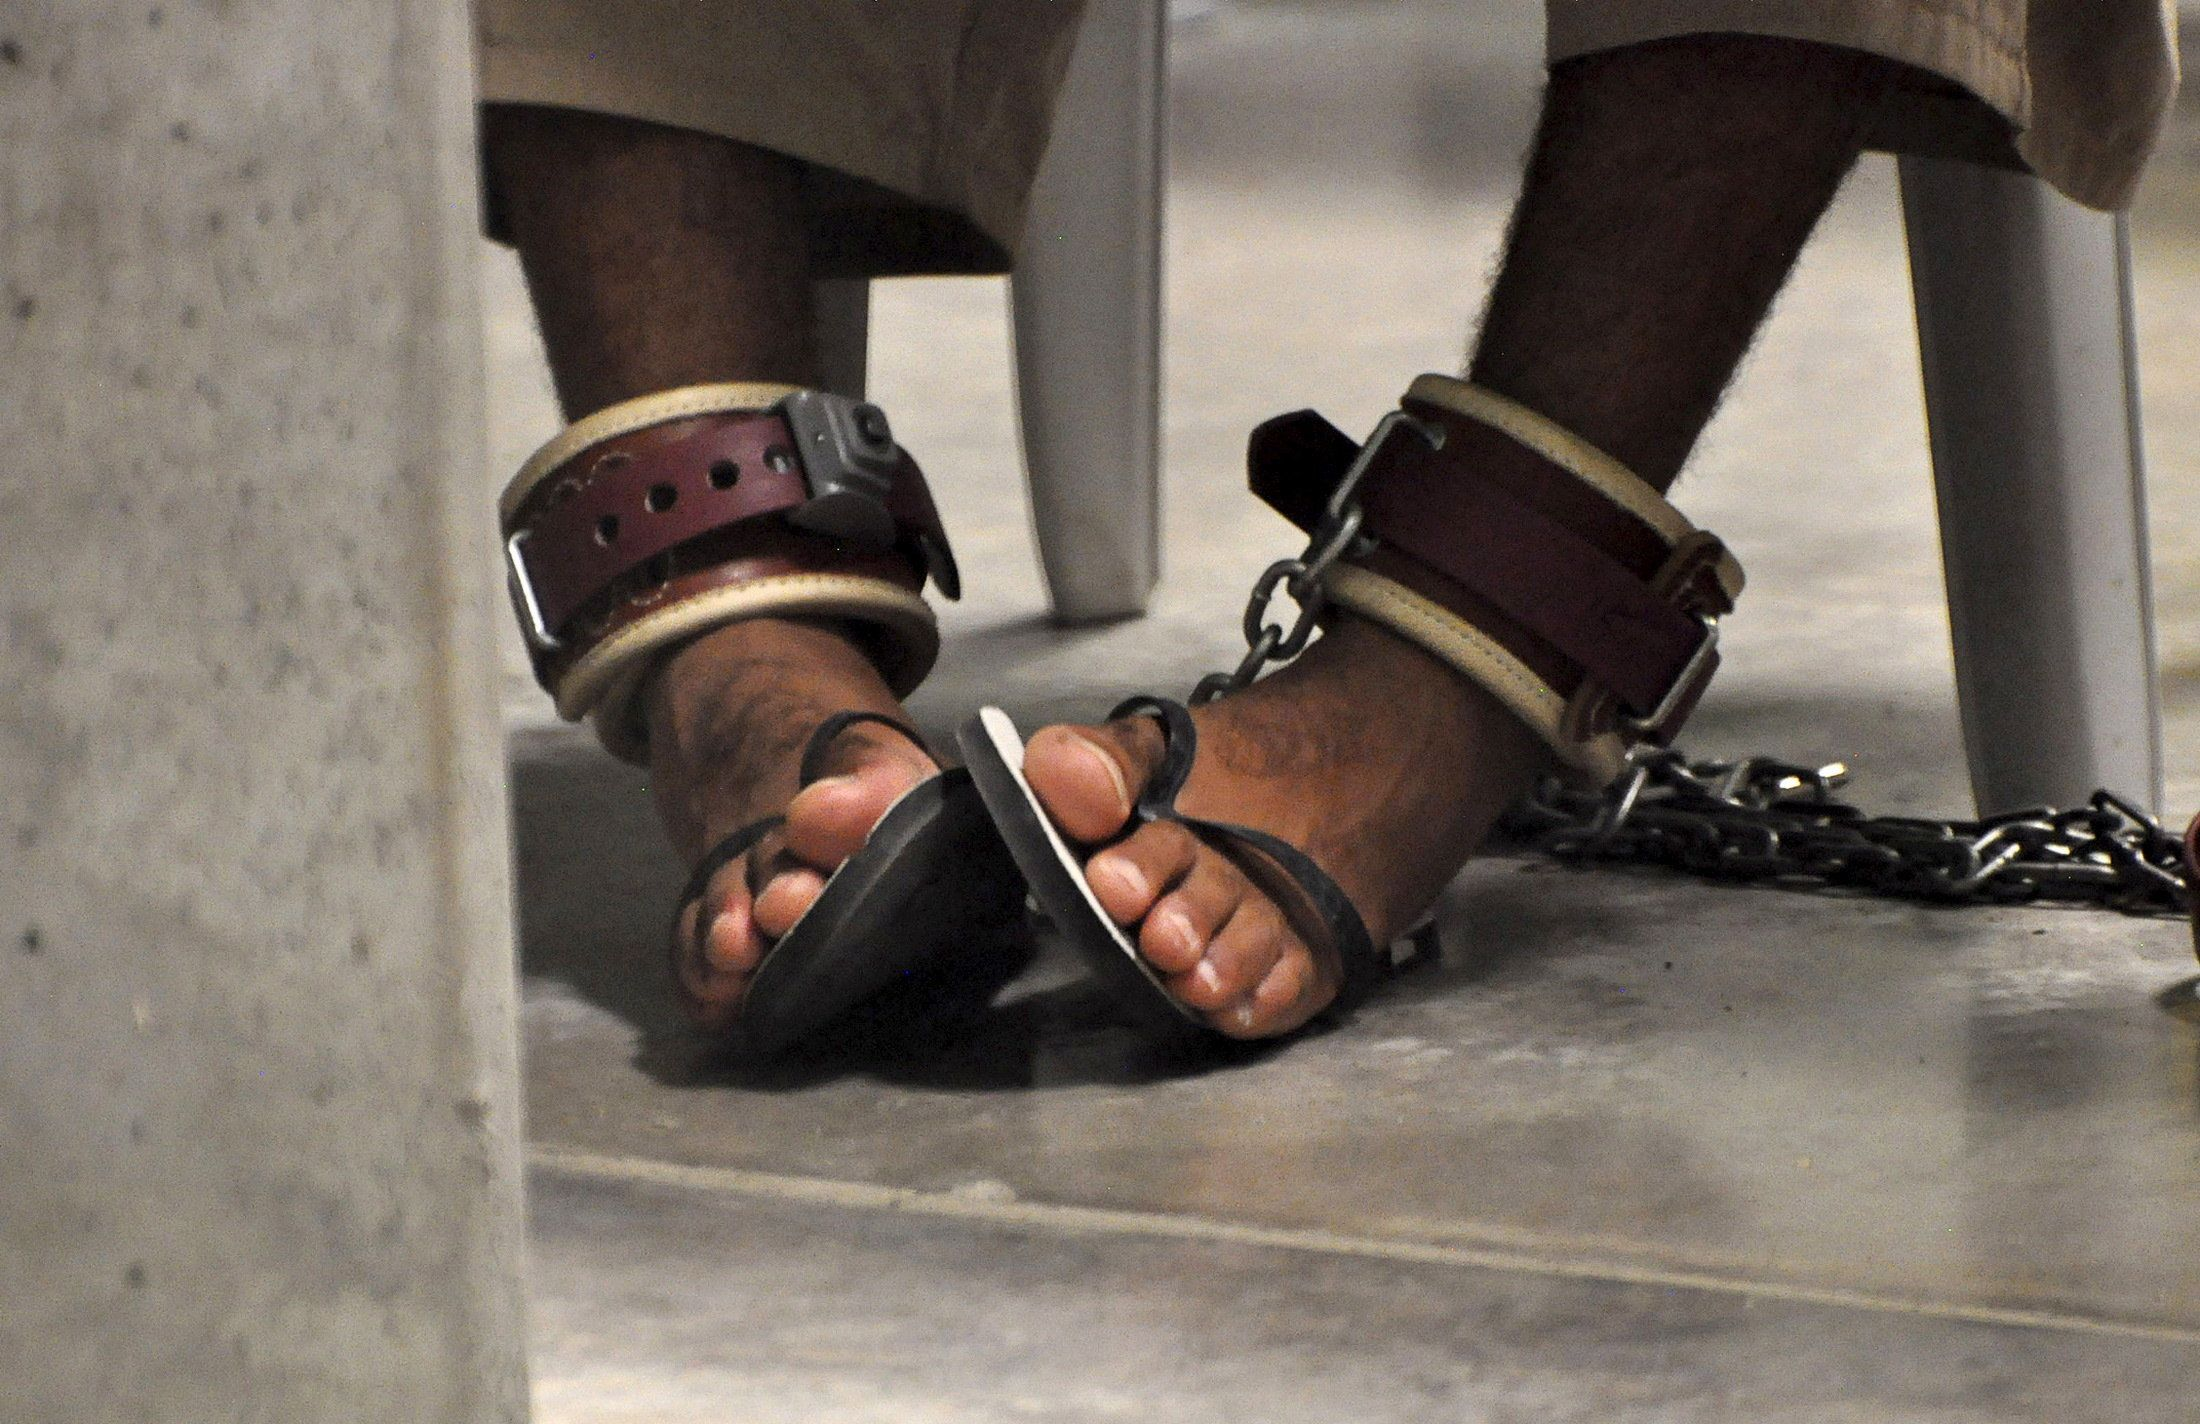 """A Guantanamo detainee's feet are shackled to the floor as he attends a """"Life Skills"""" class inside Guantanamo Bay."""